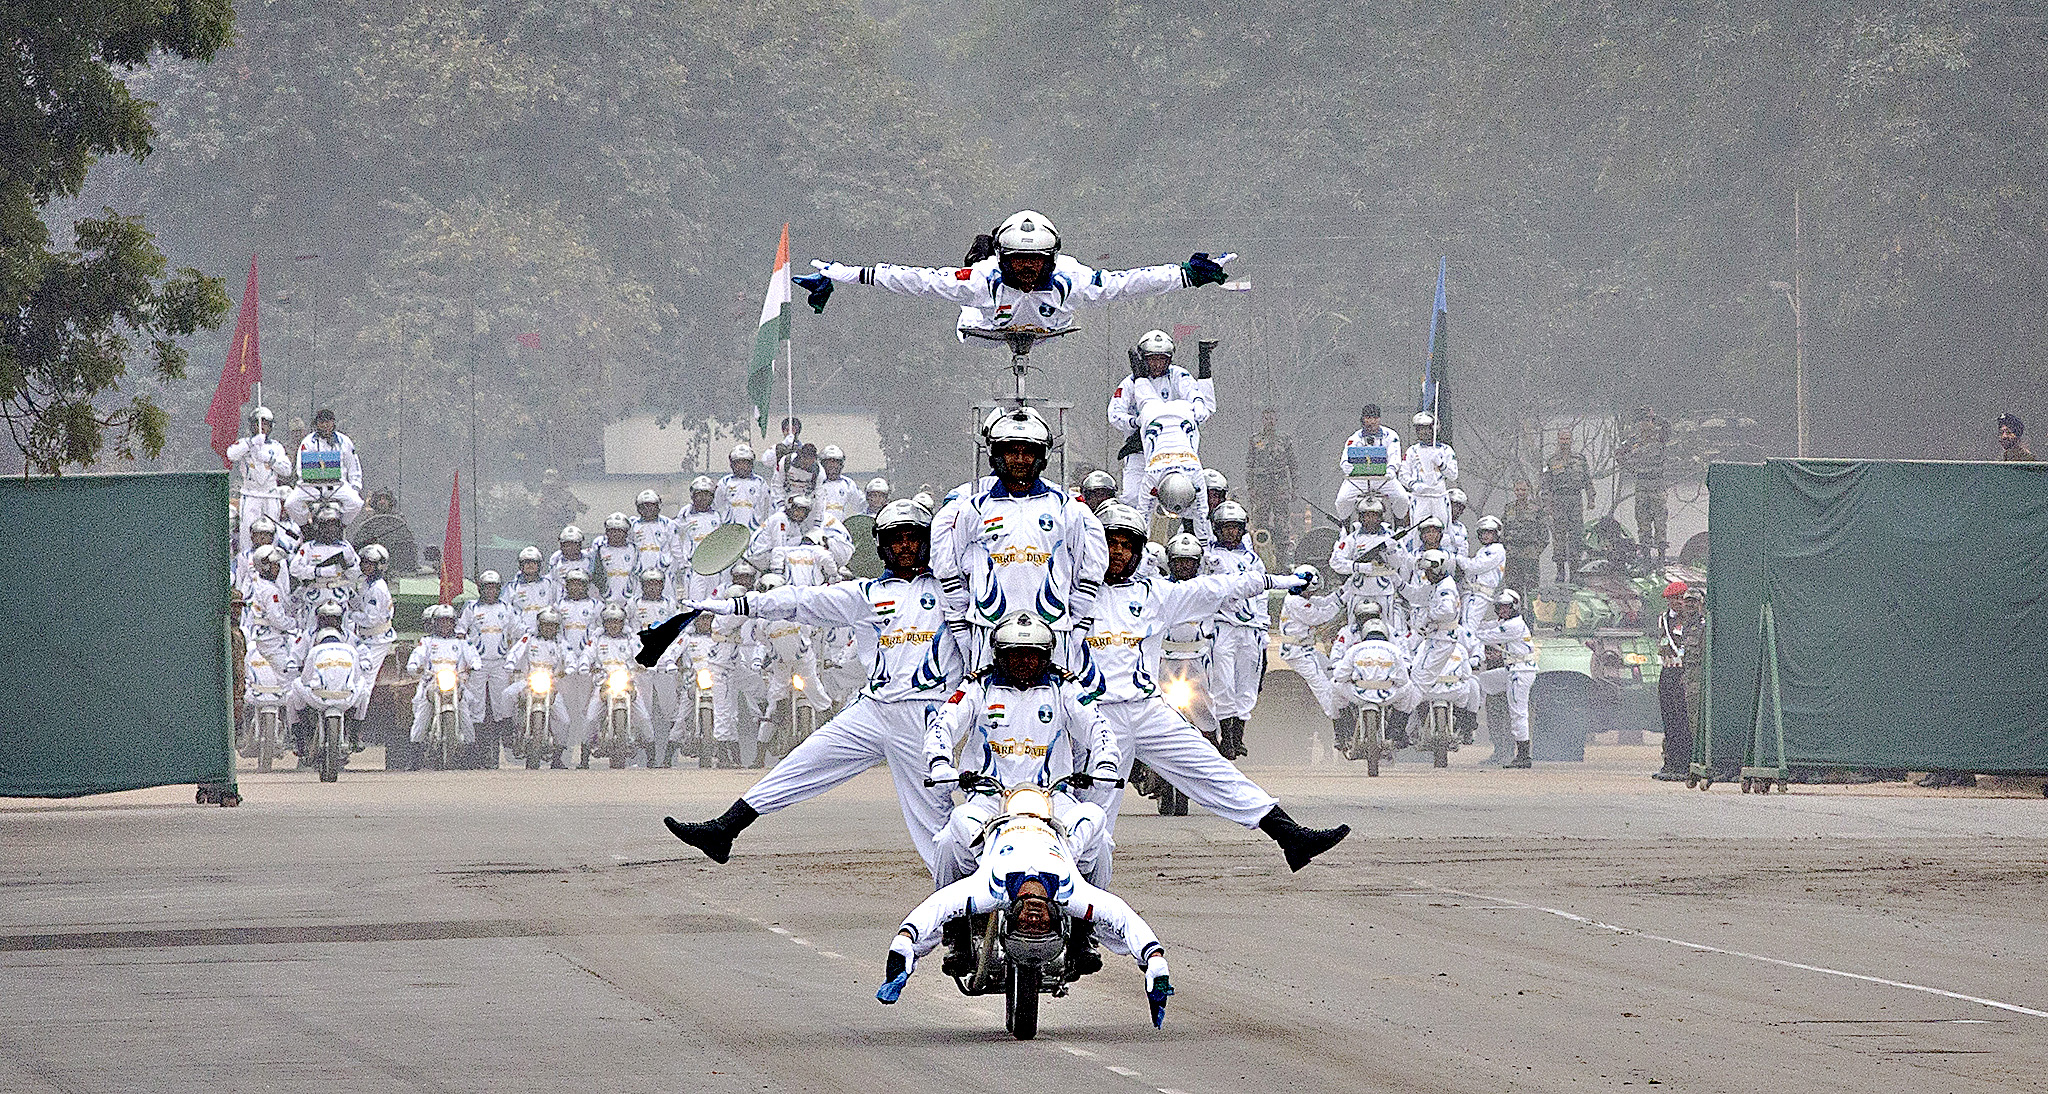 Indian army dare devils display their skills on motorcycles during the Army day parade in New Delhi, India, Friday, Jan. 15, 2016. The Indian army is the third largest army in the world.